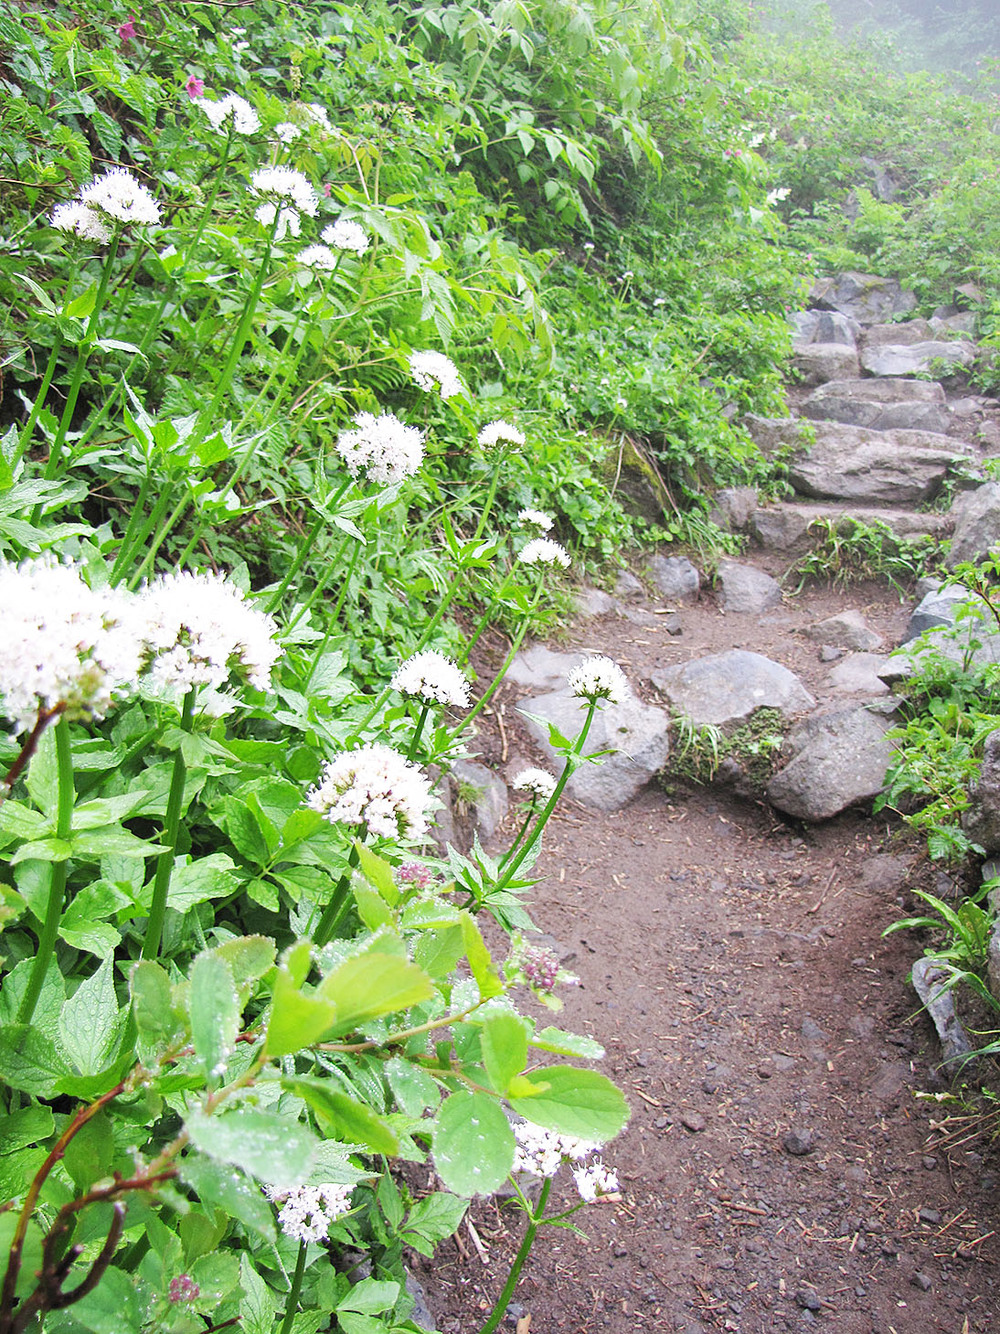 Wildflowers line the pathway up to Comet Falls, especially in the rockier sections.